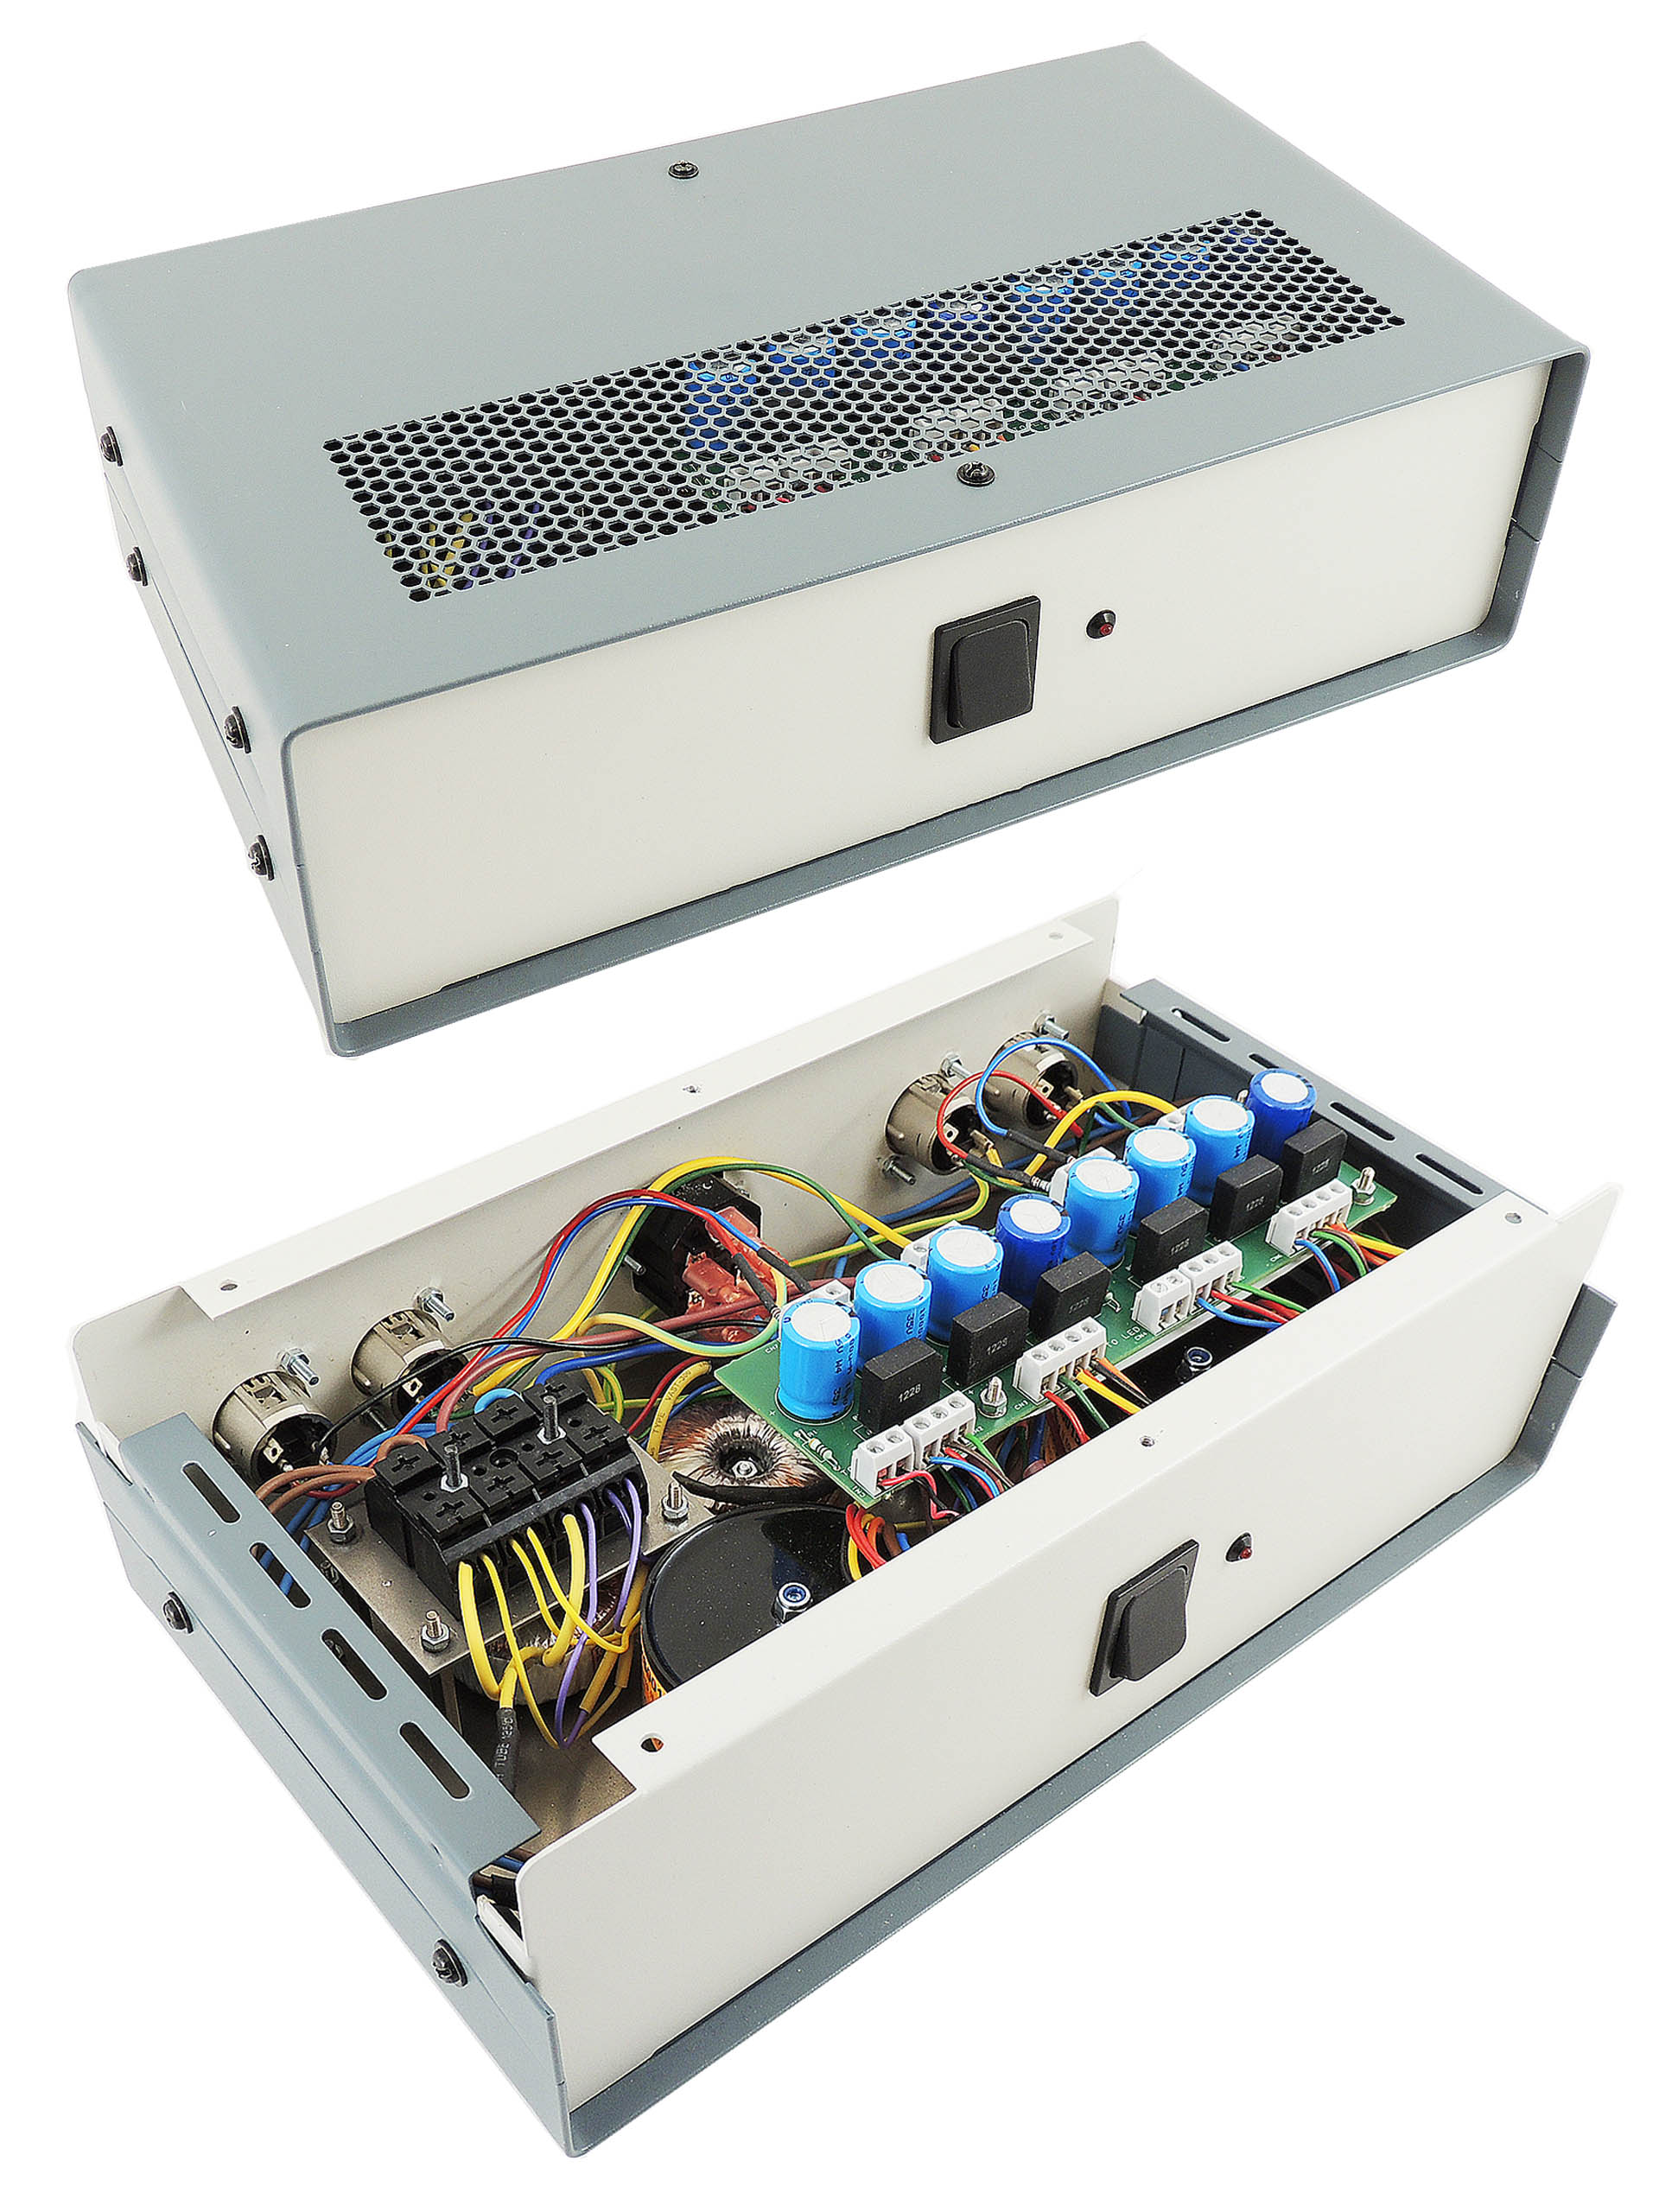 Custom external power supply for two old Line 6 Pro series effects units